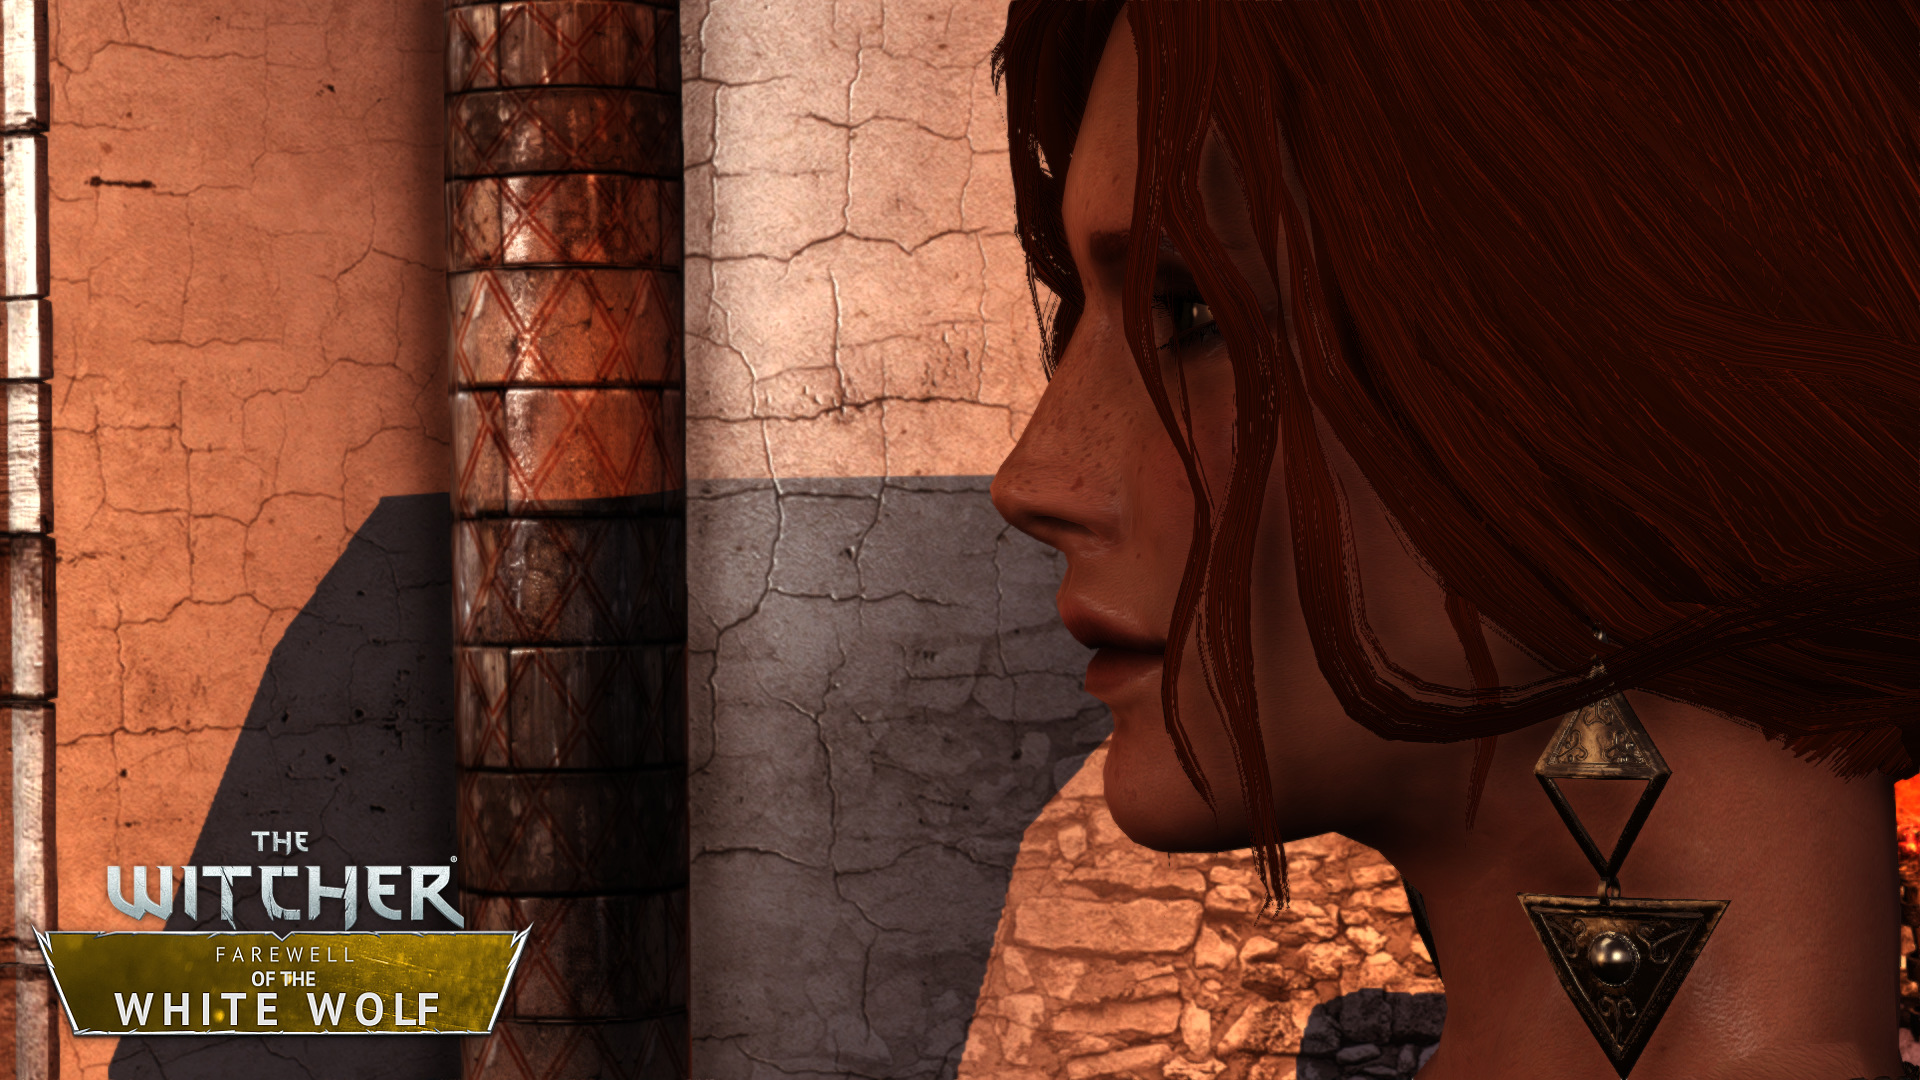 witcher-farewell-of-the-whitewolf-021